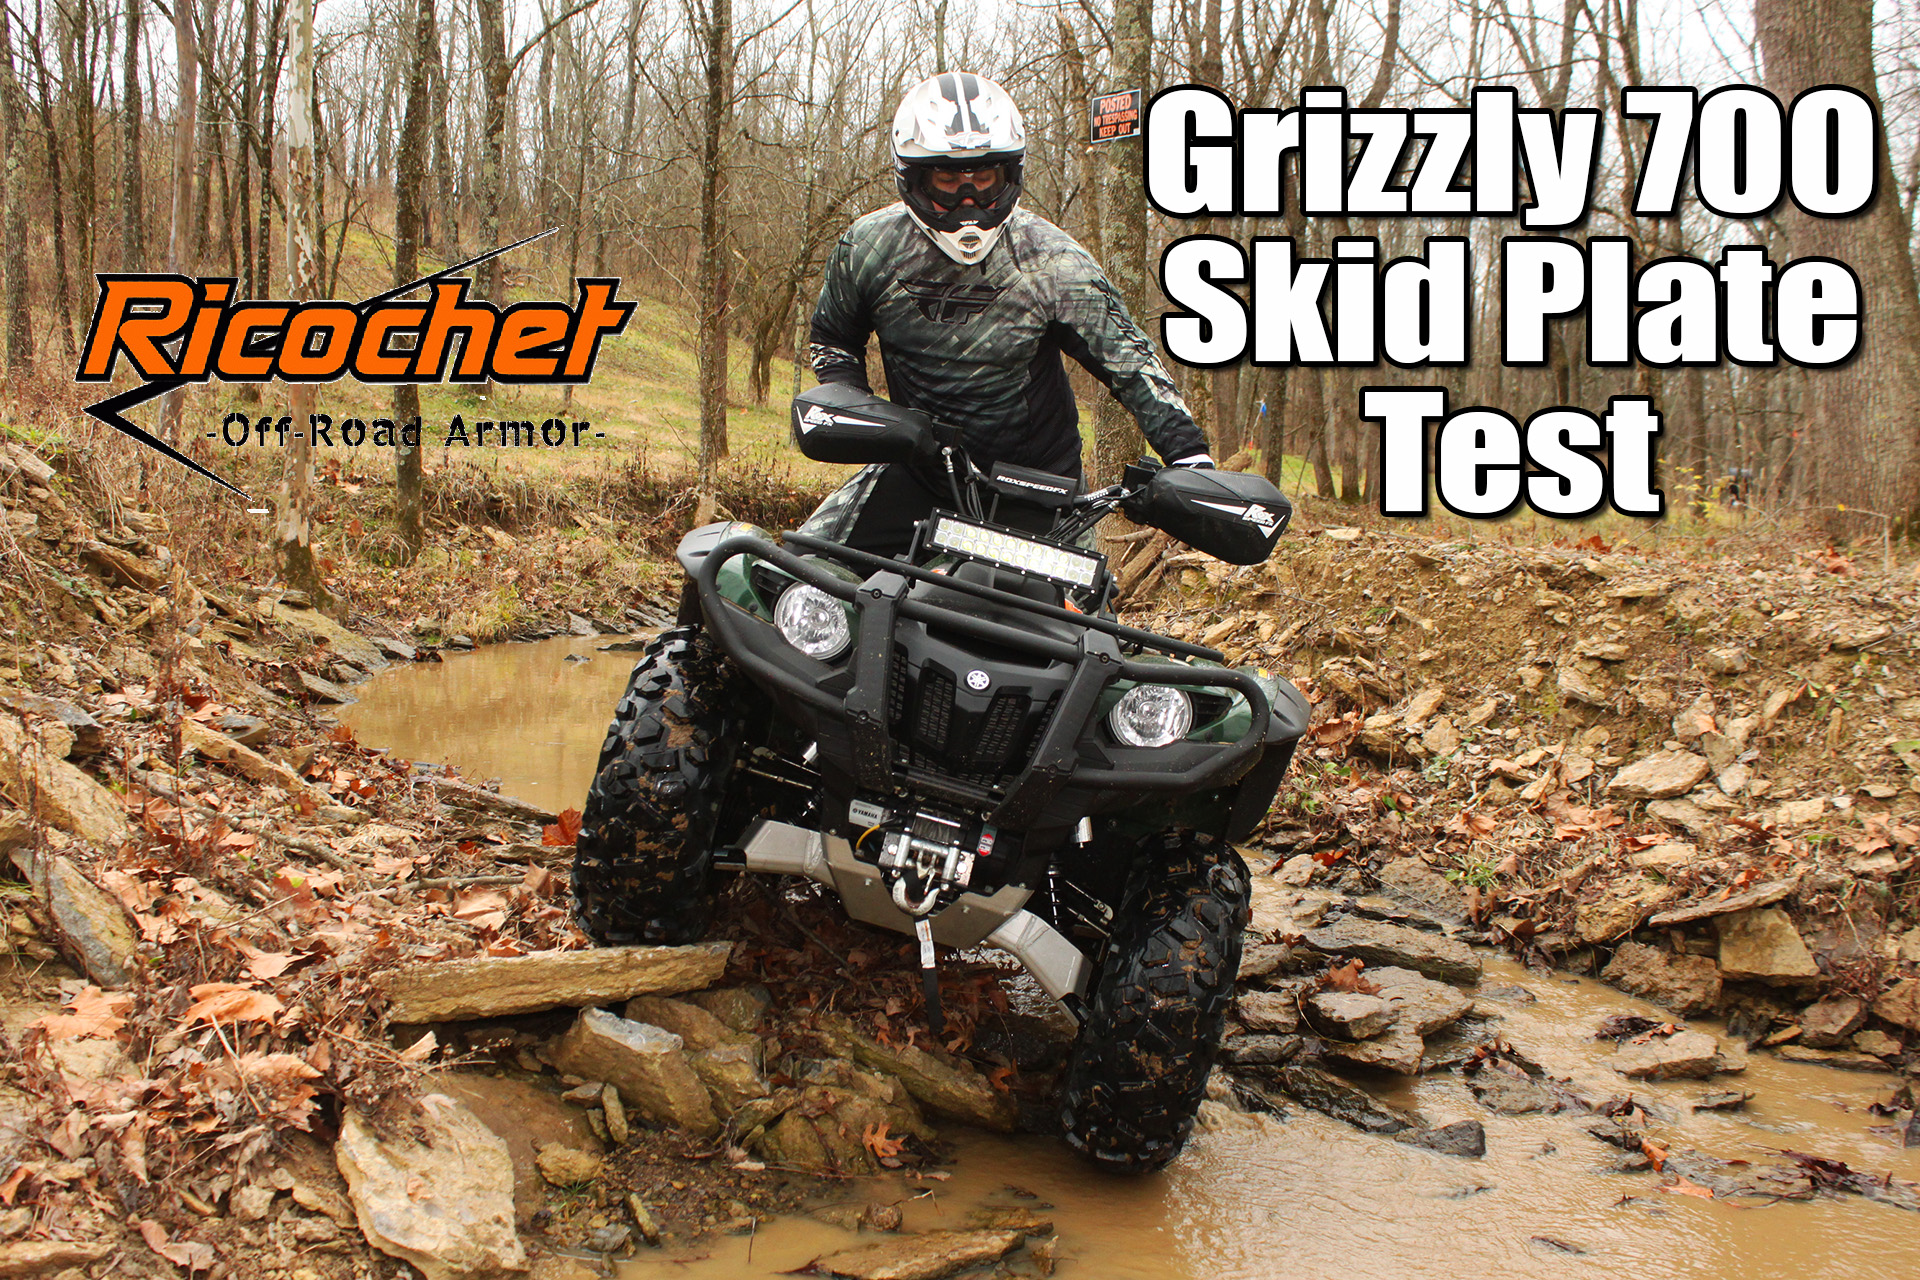 Yamaha Grizzly Skid Plate